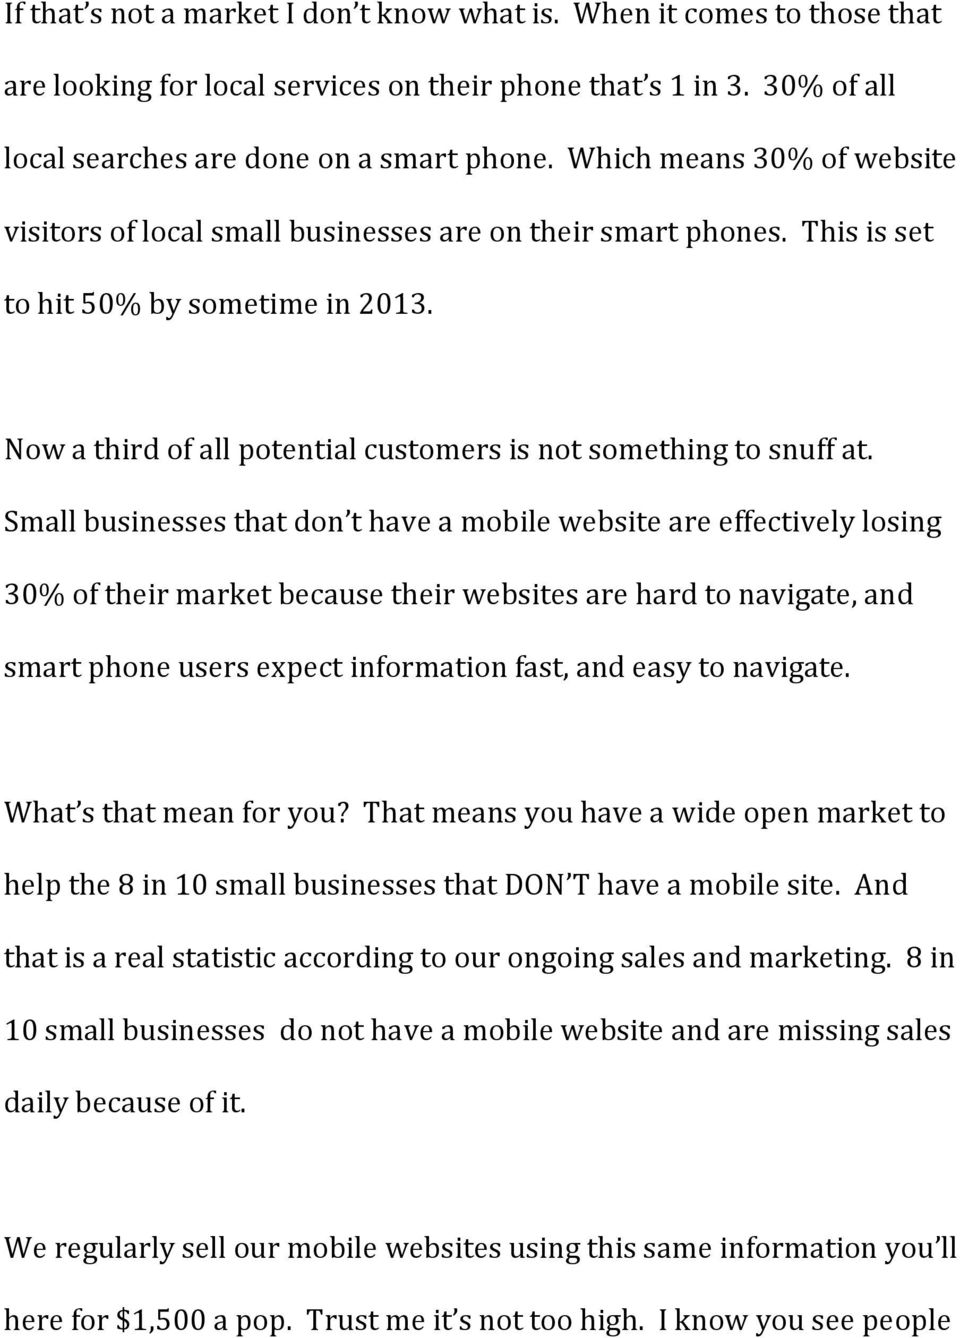 Now a third of all potential customers is not something to snuff at.